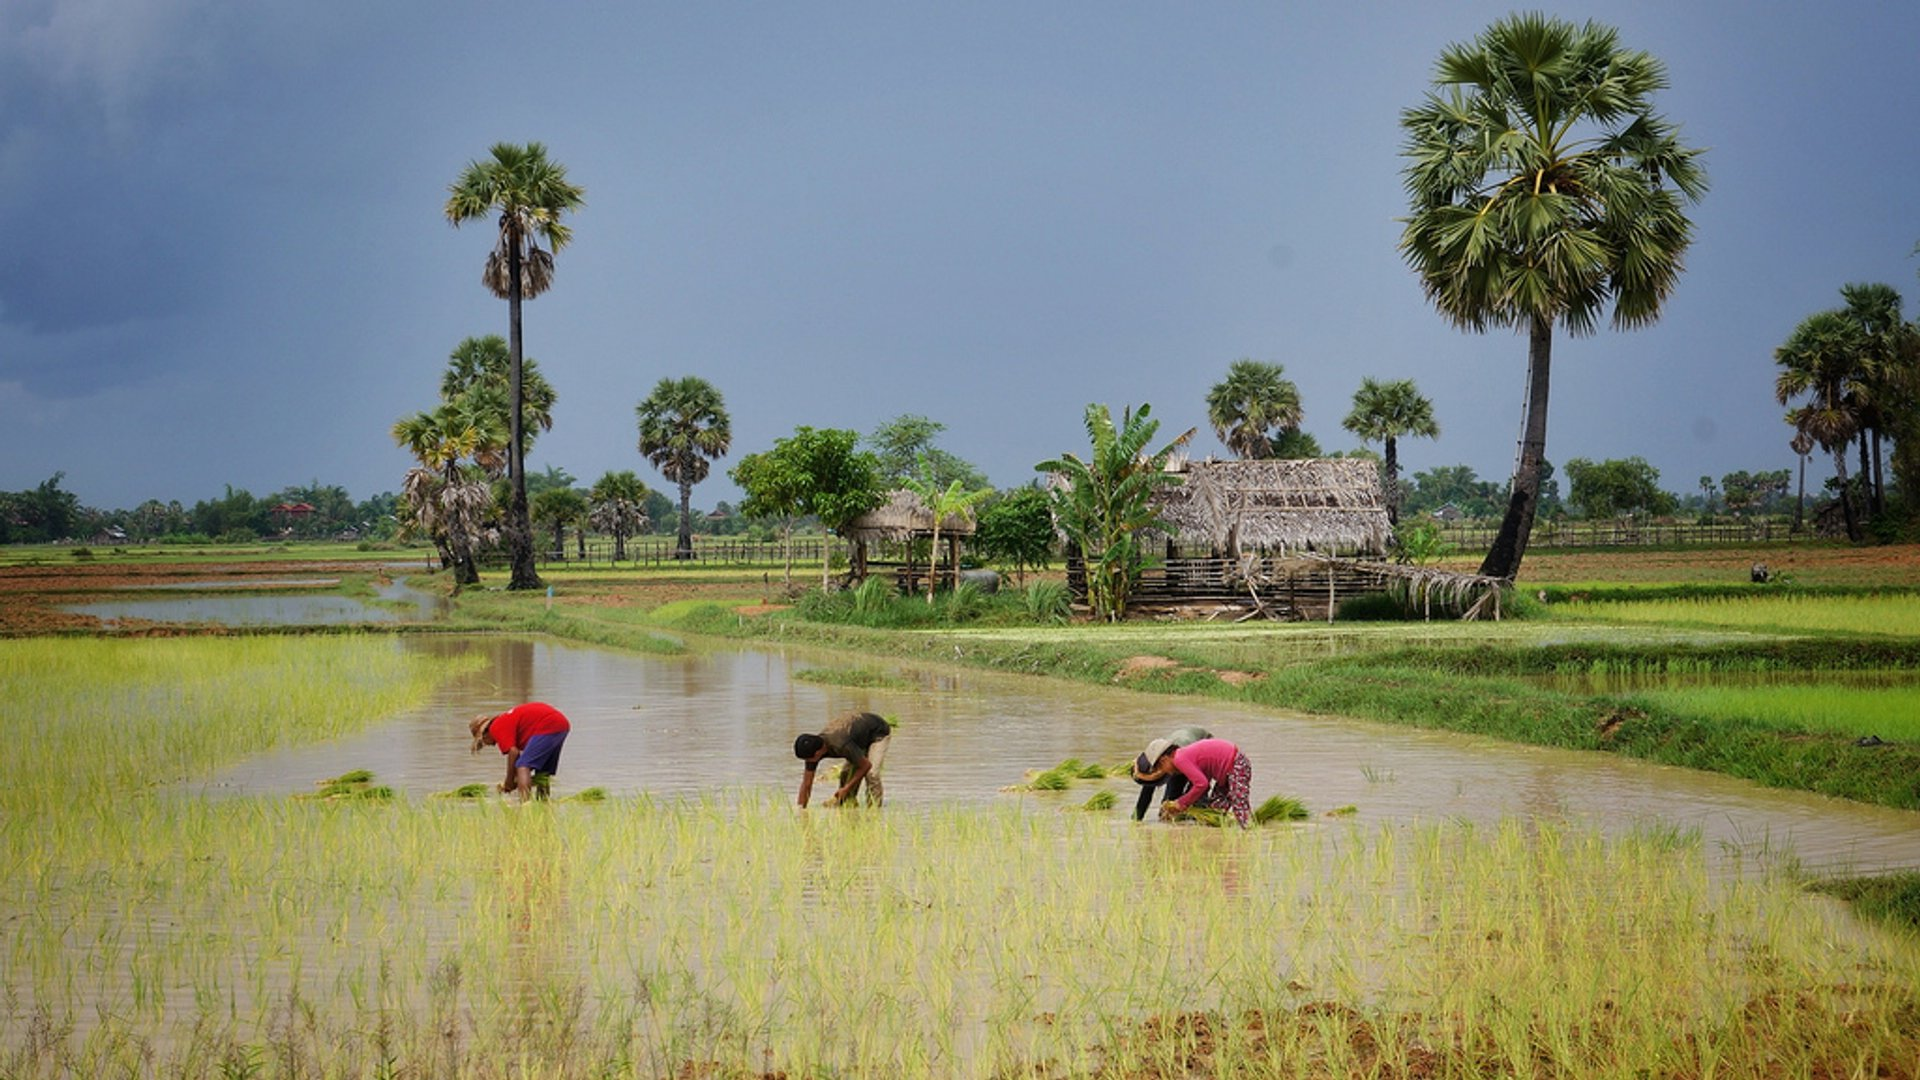 Rice Harvest Season in Cambodia 2019 - Best Time